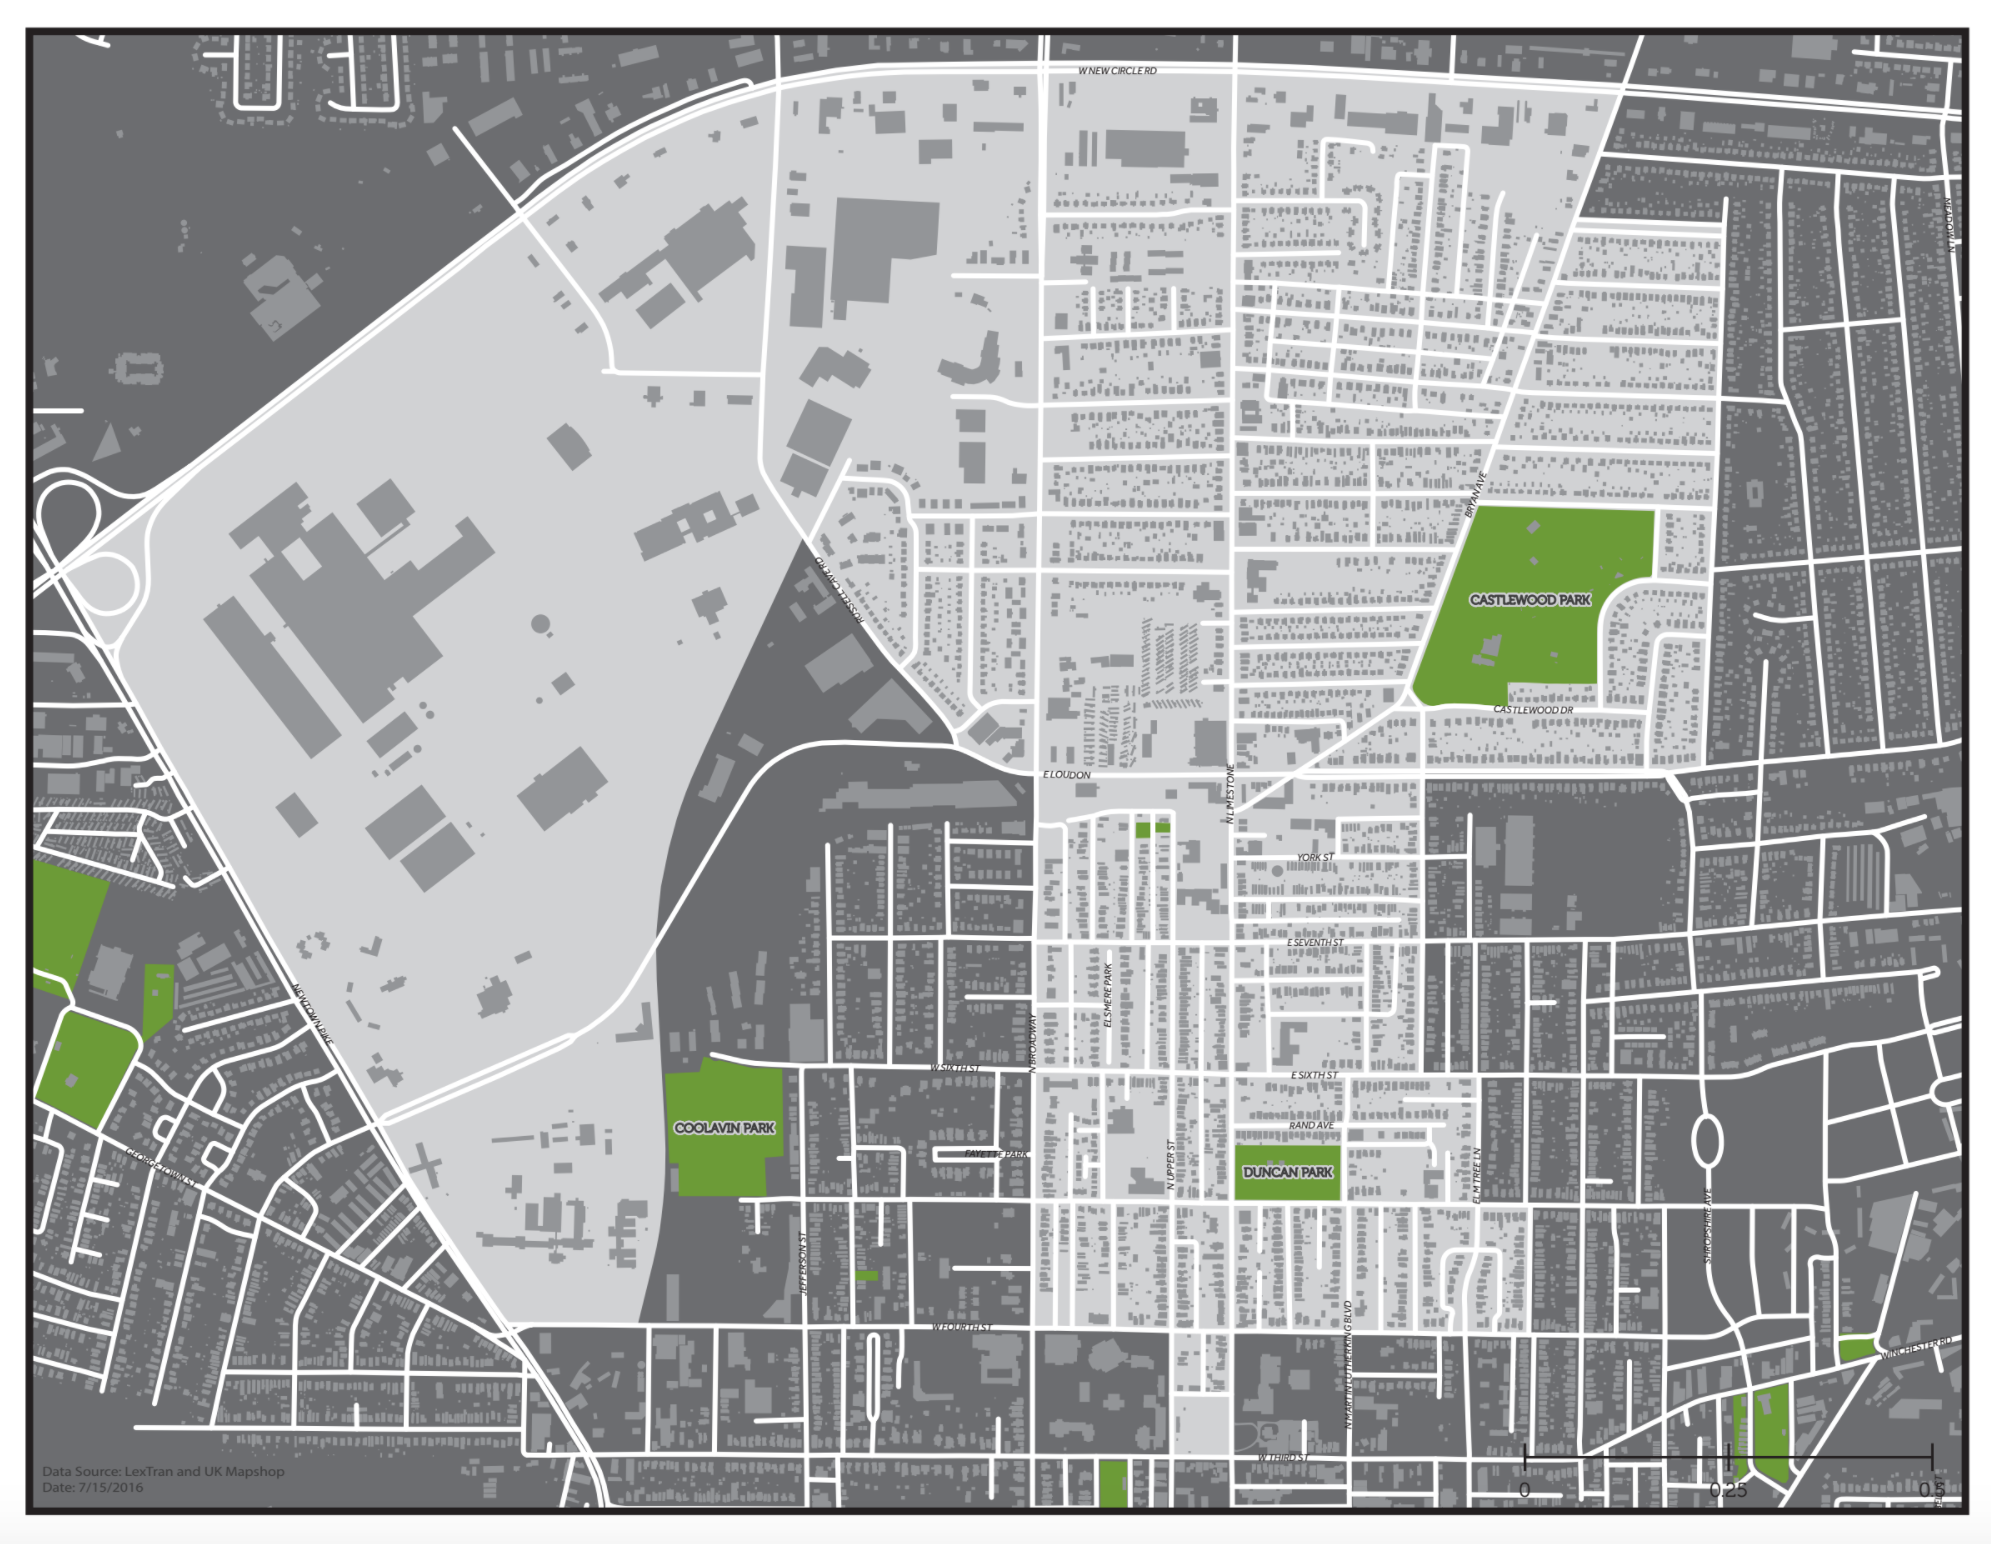 Lexington's North End - highlighted in light gray